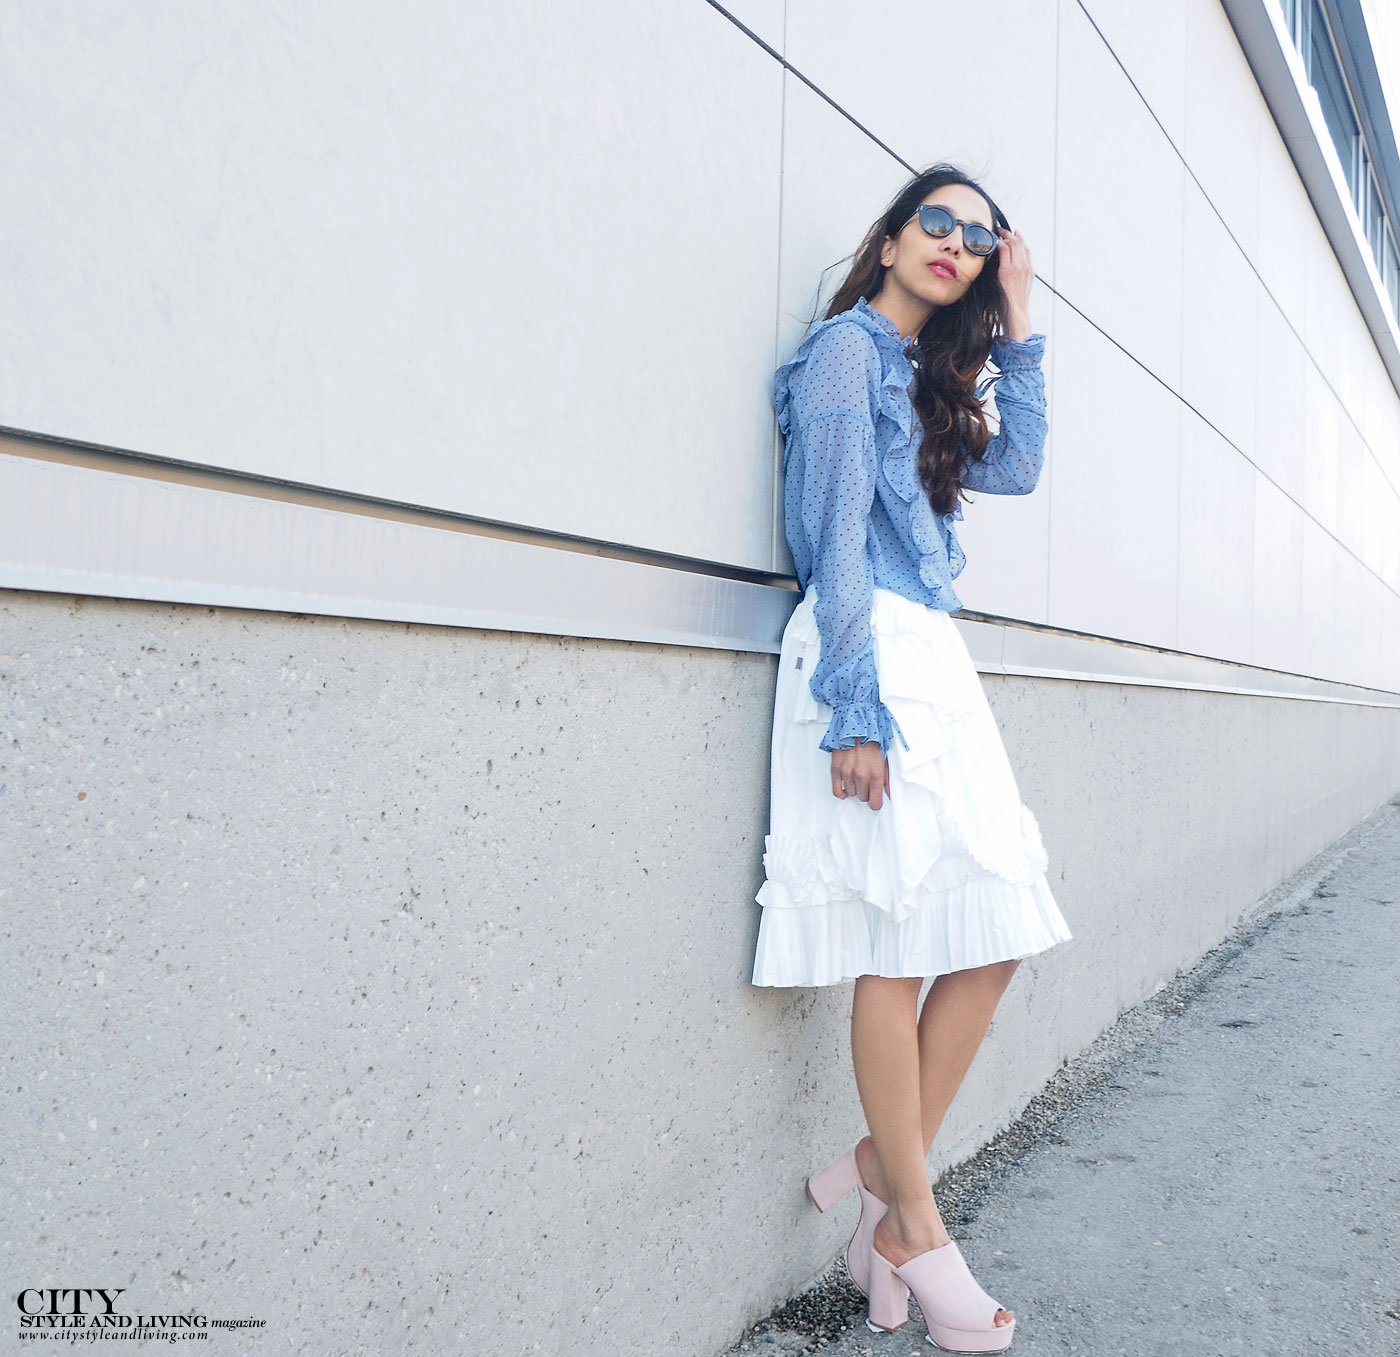 City style and living magazine The Editors Notebook style fashion blogger Shivana Maharaj how to wear frills for spring 2017 standing by wall